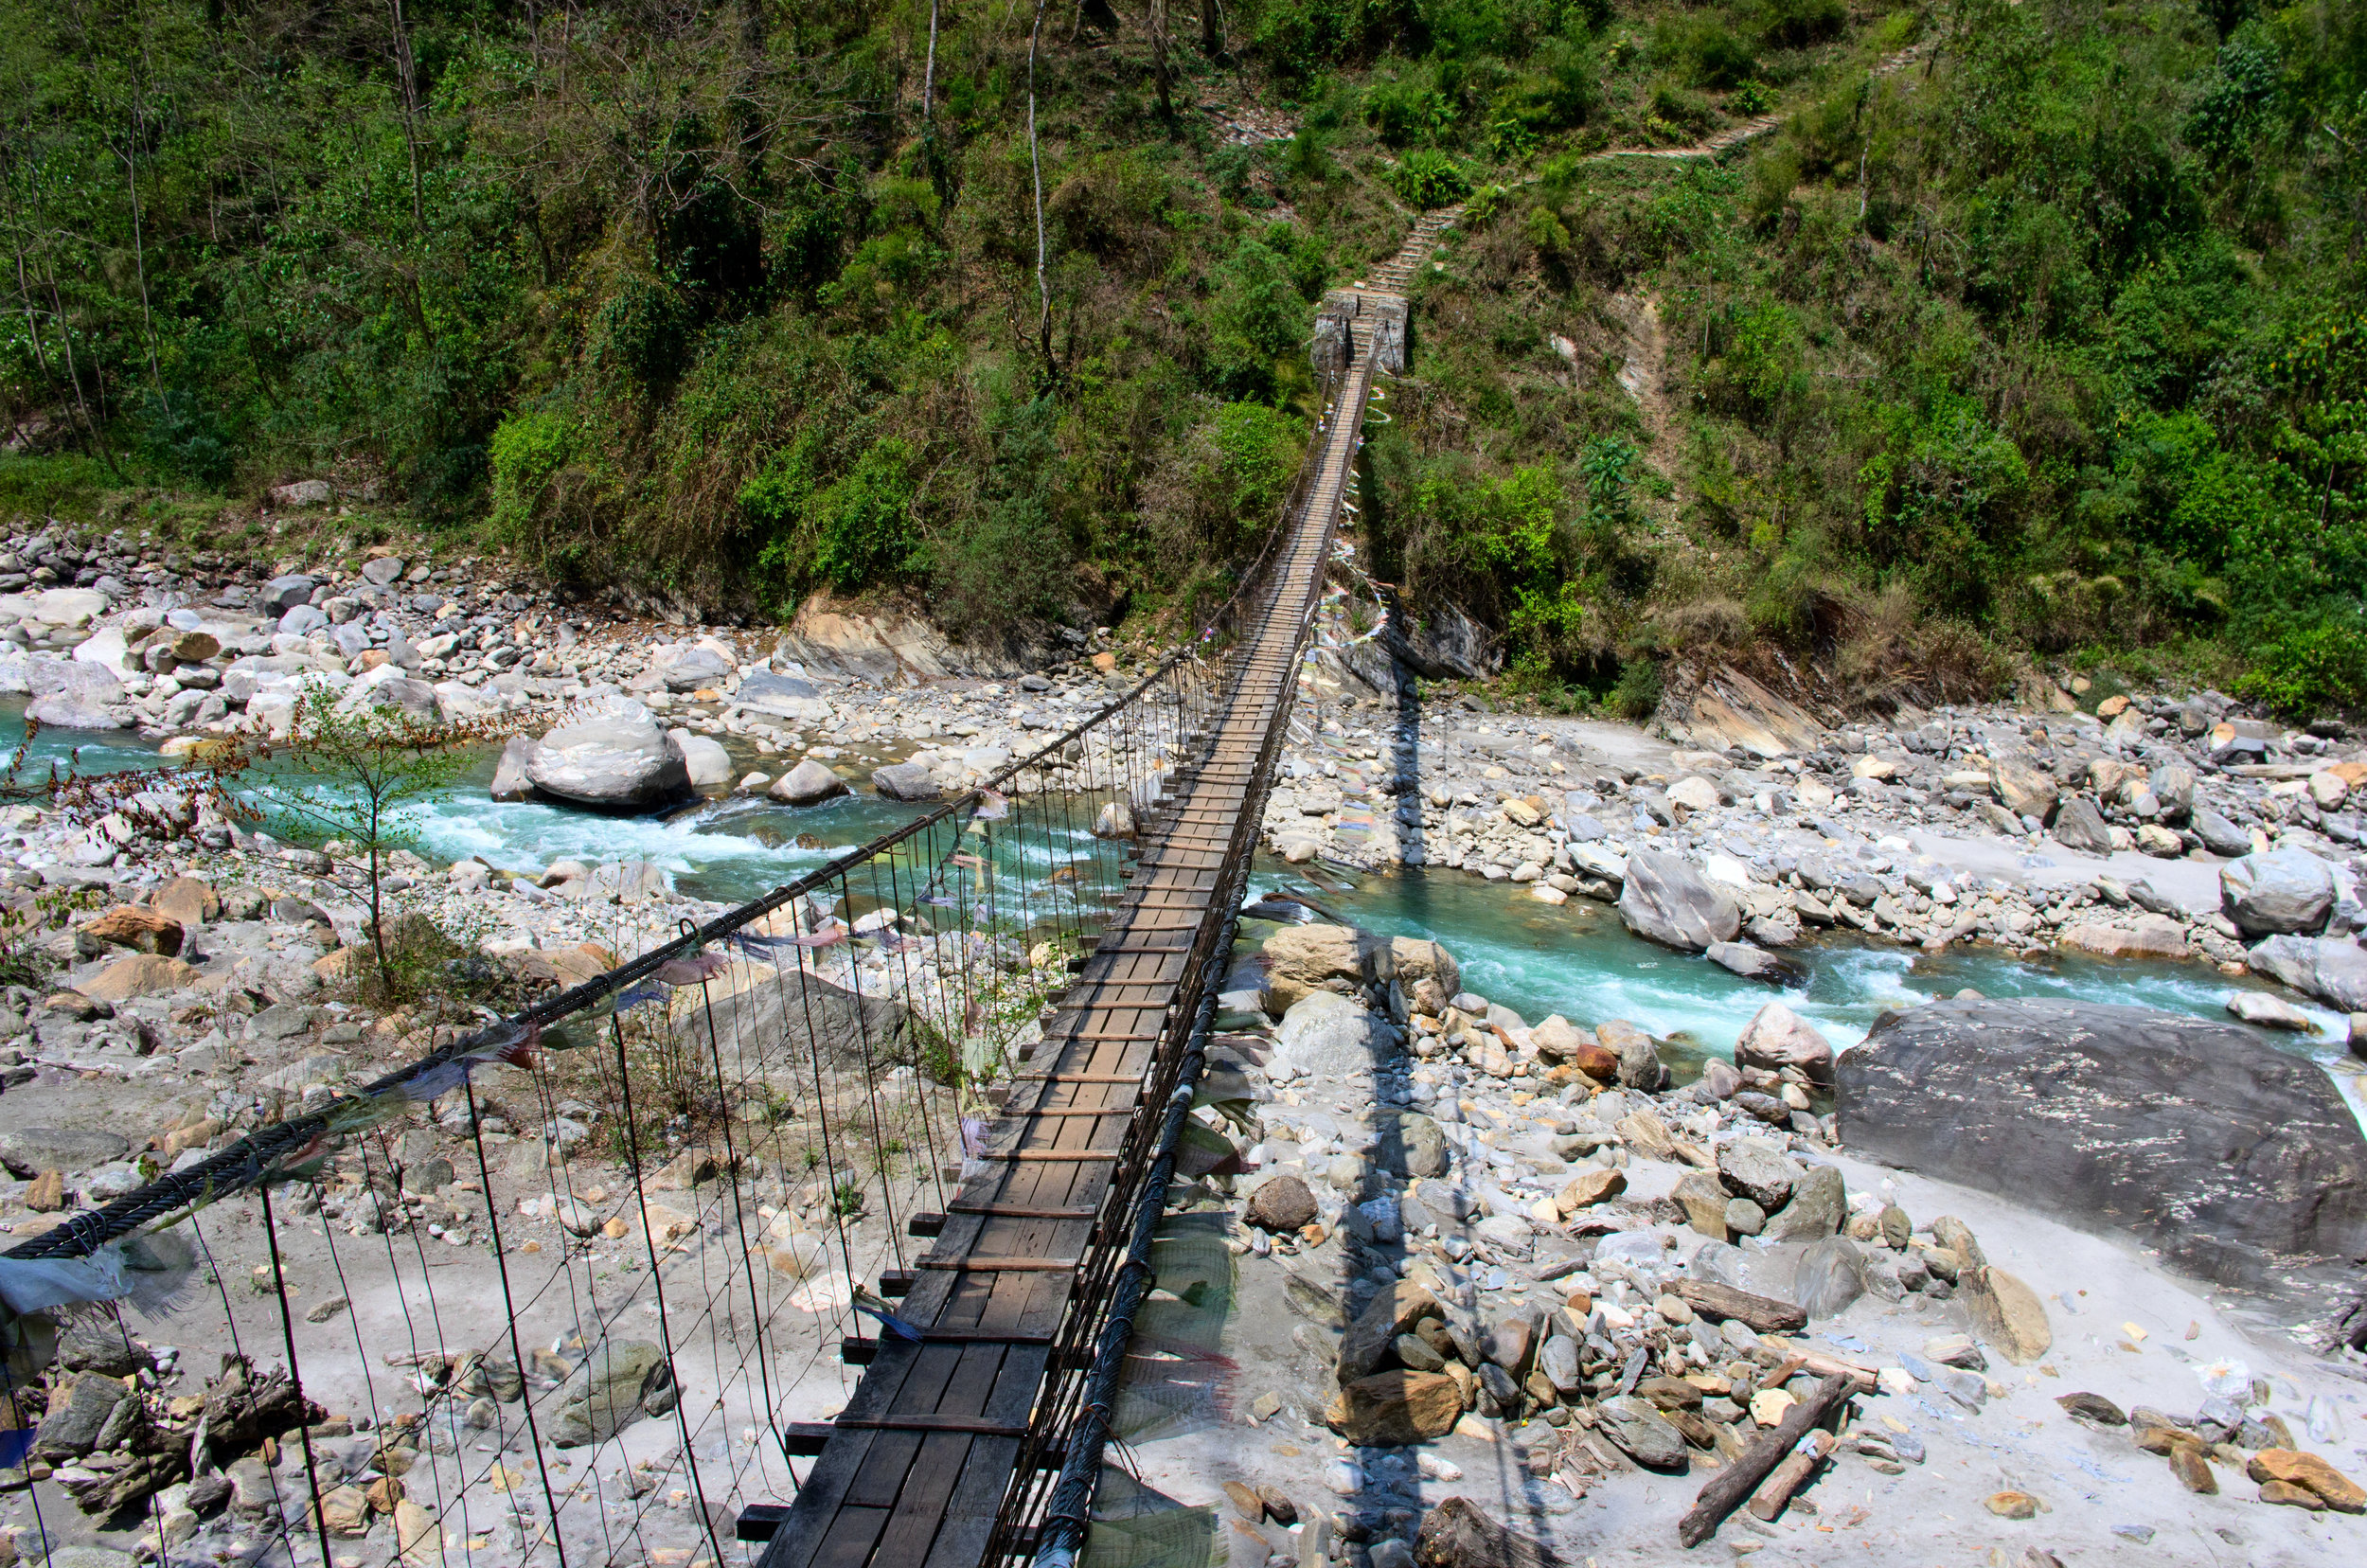 Chitwan National Park - For everyone headed to Everest Base Camp